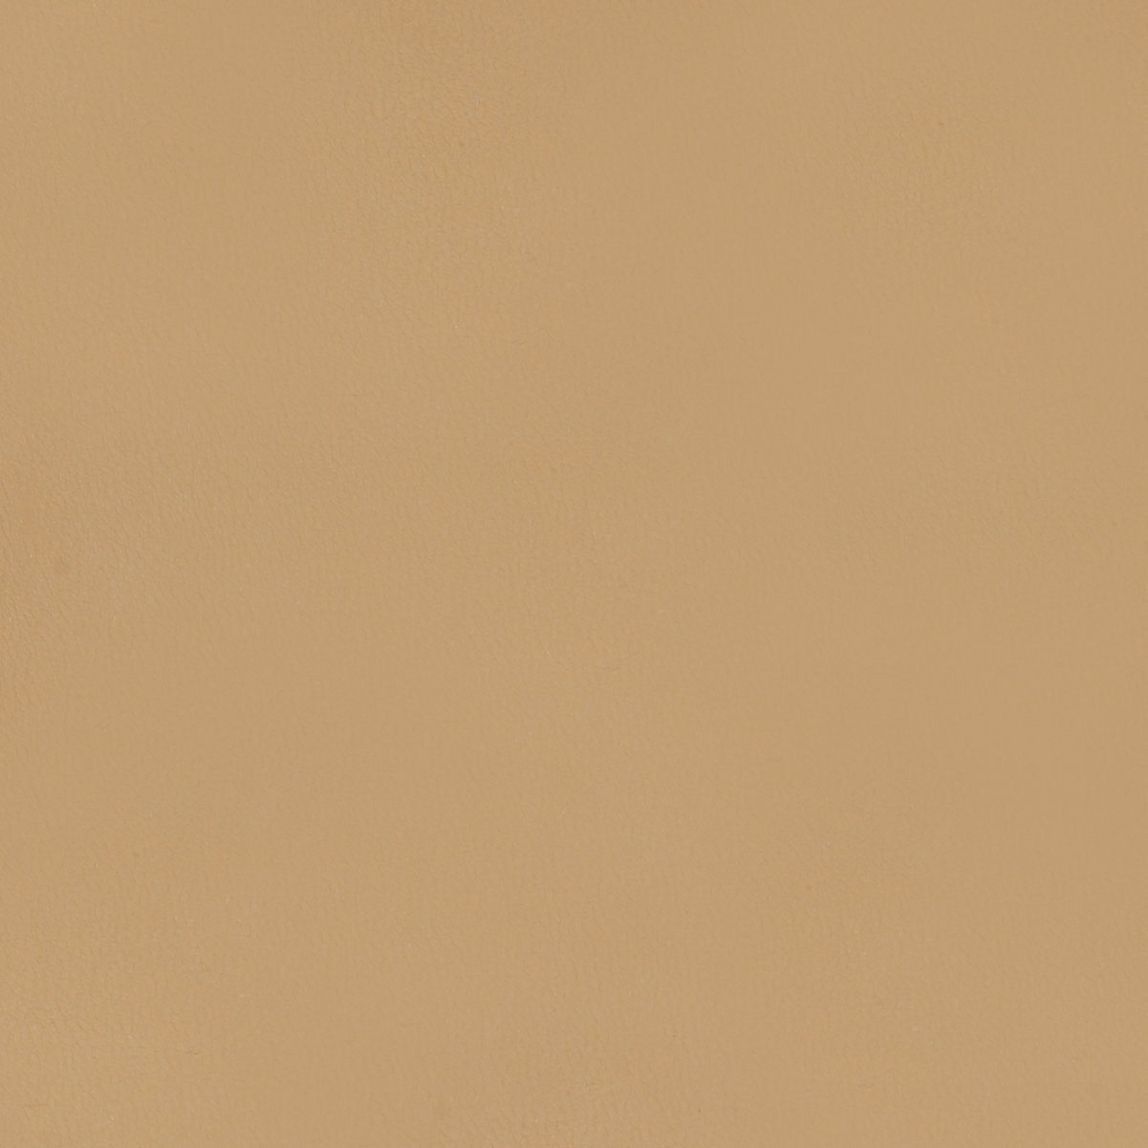 Silica Brownstone Swatch